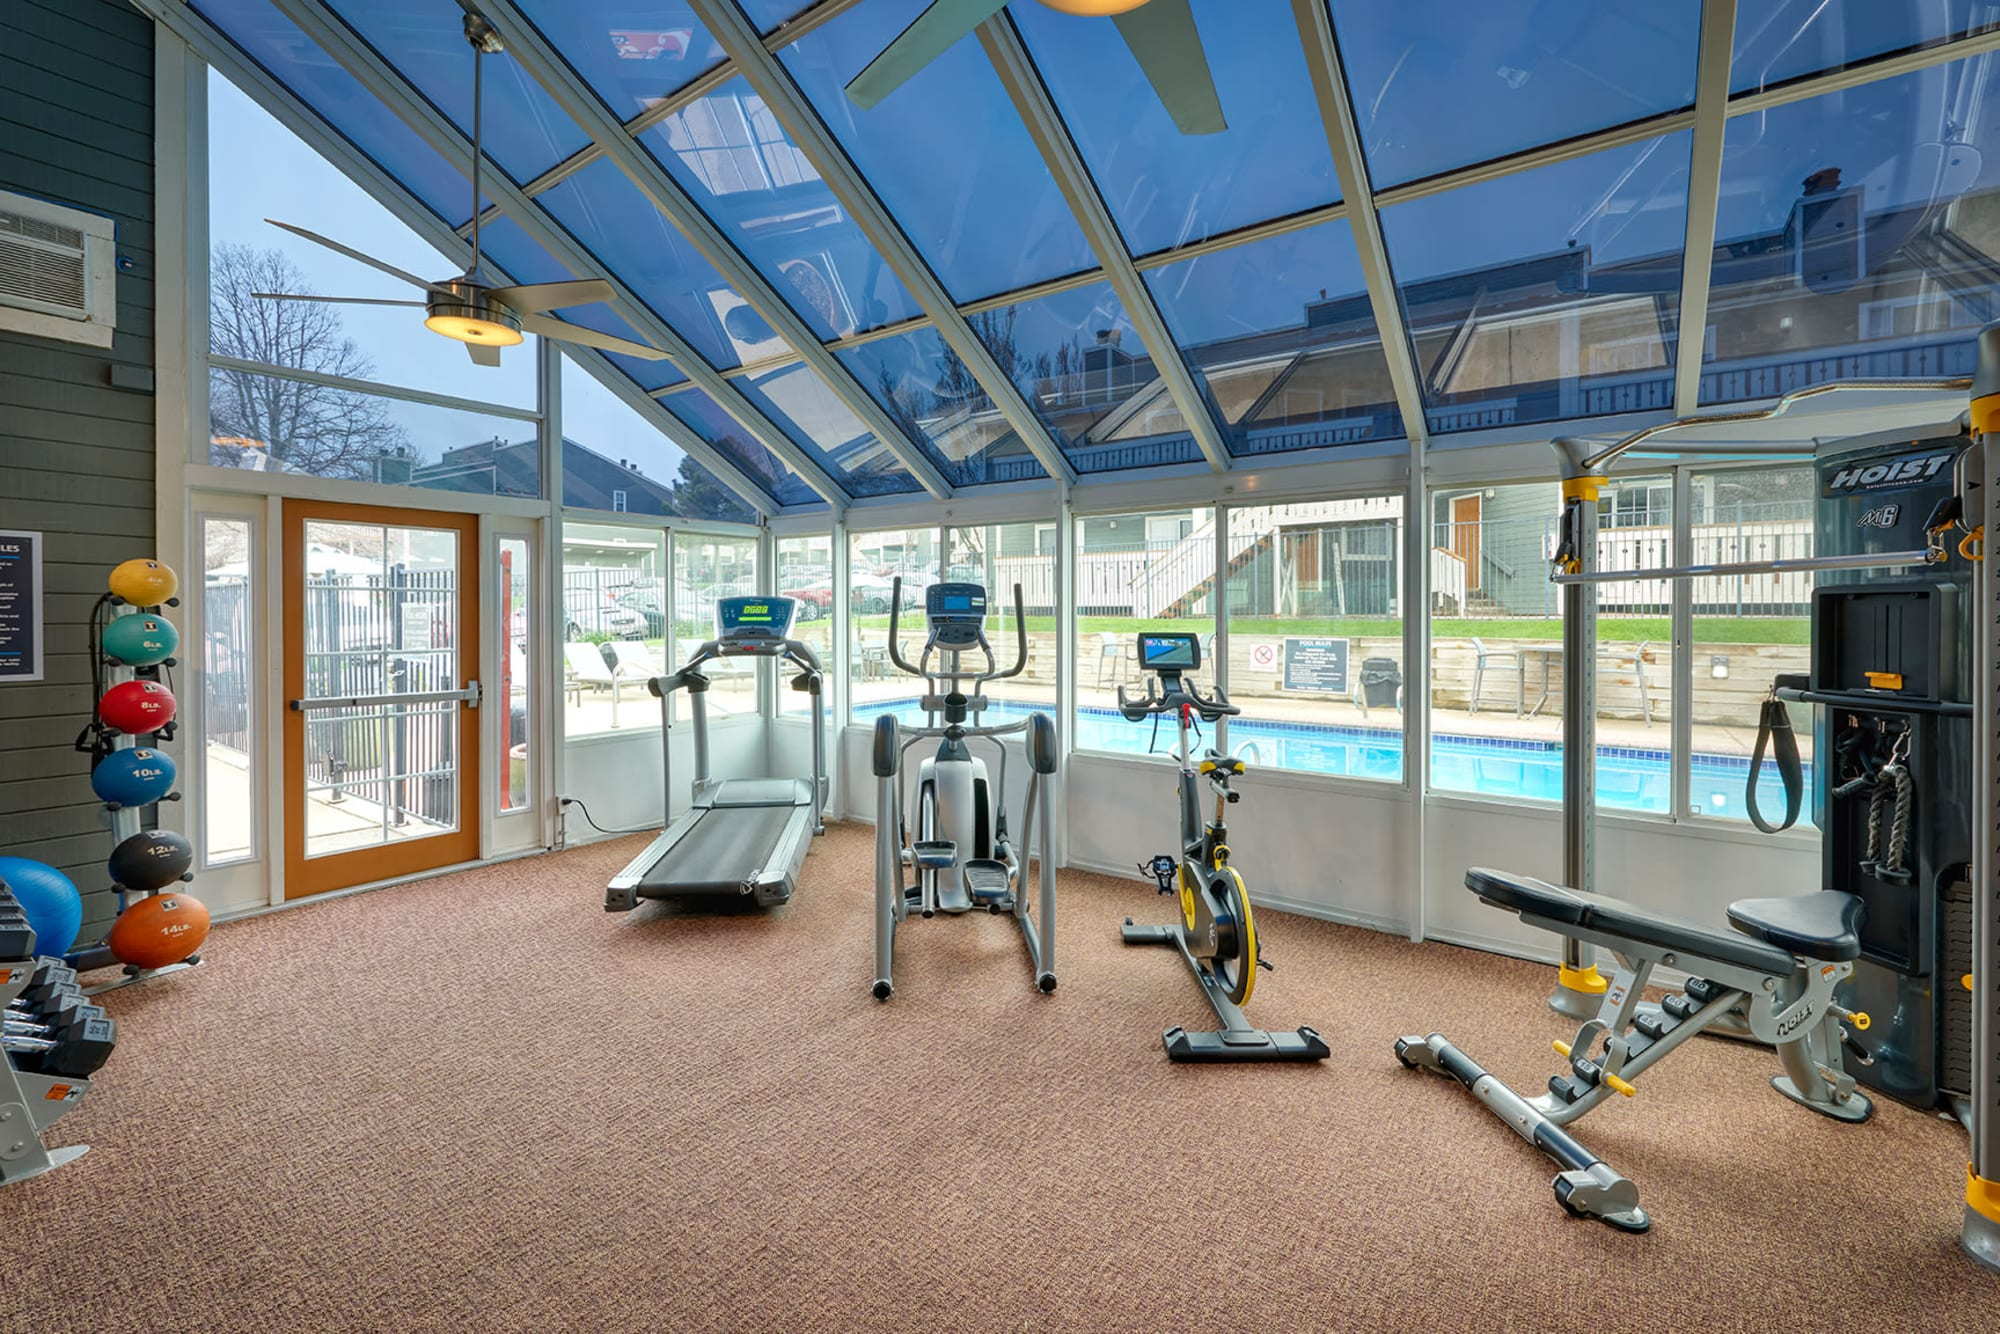 The gym facilities at Bluesky Landing Apartments in Lakewood, Colorado